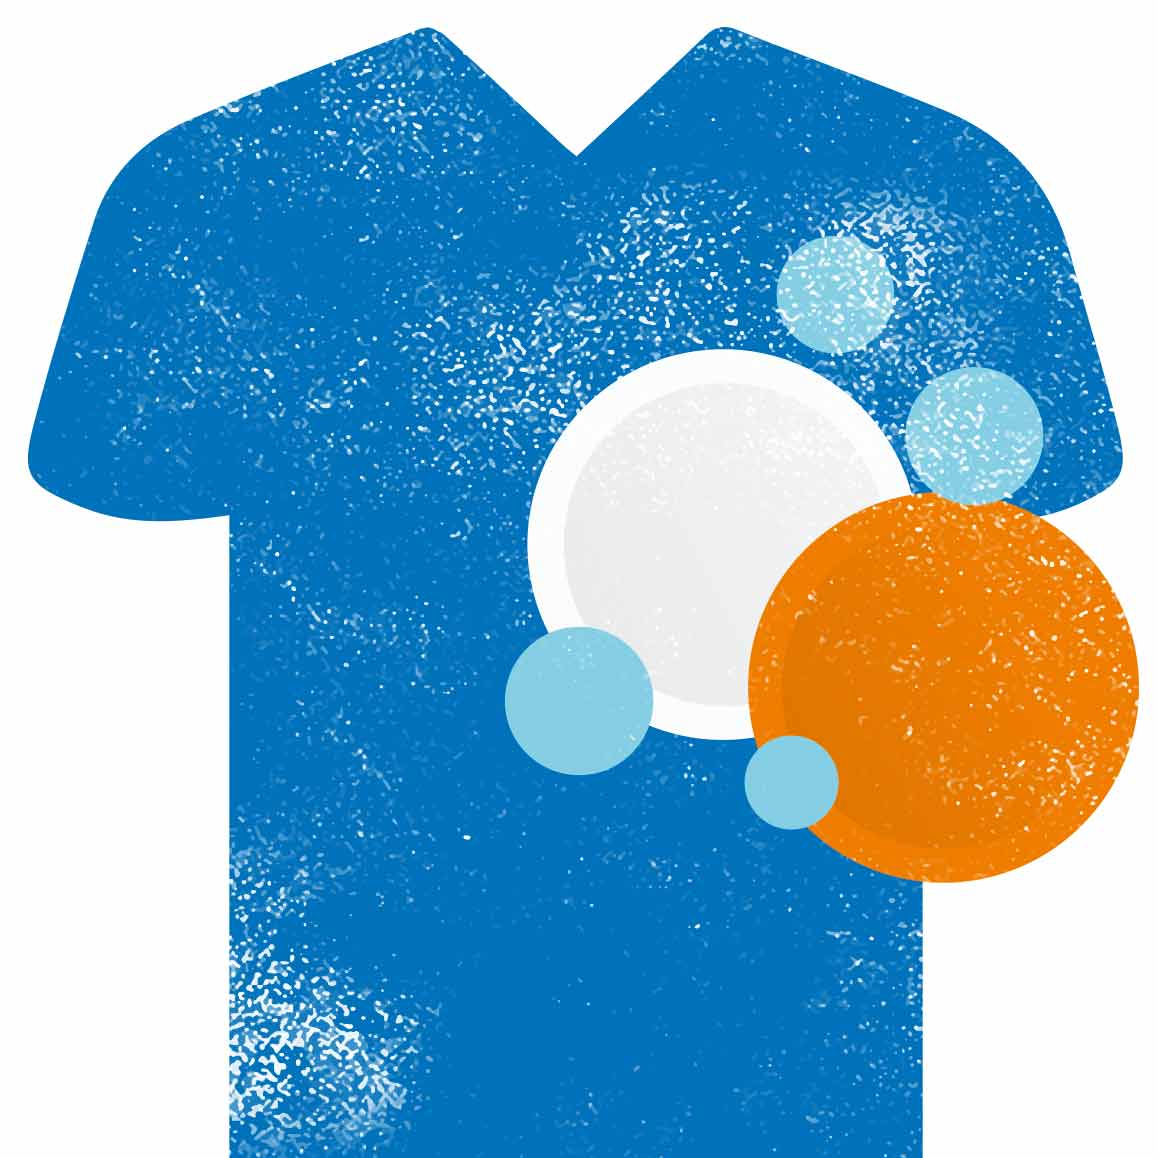 Tshirt and tablets_blue orange and light blue